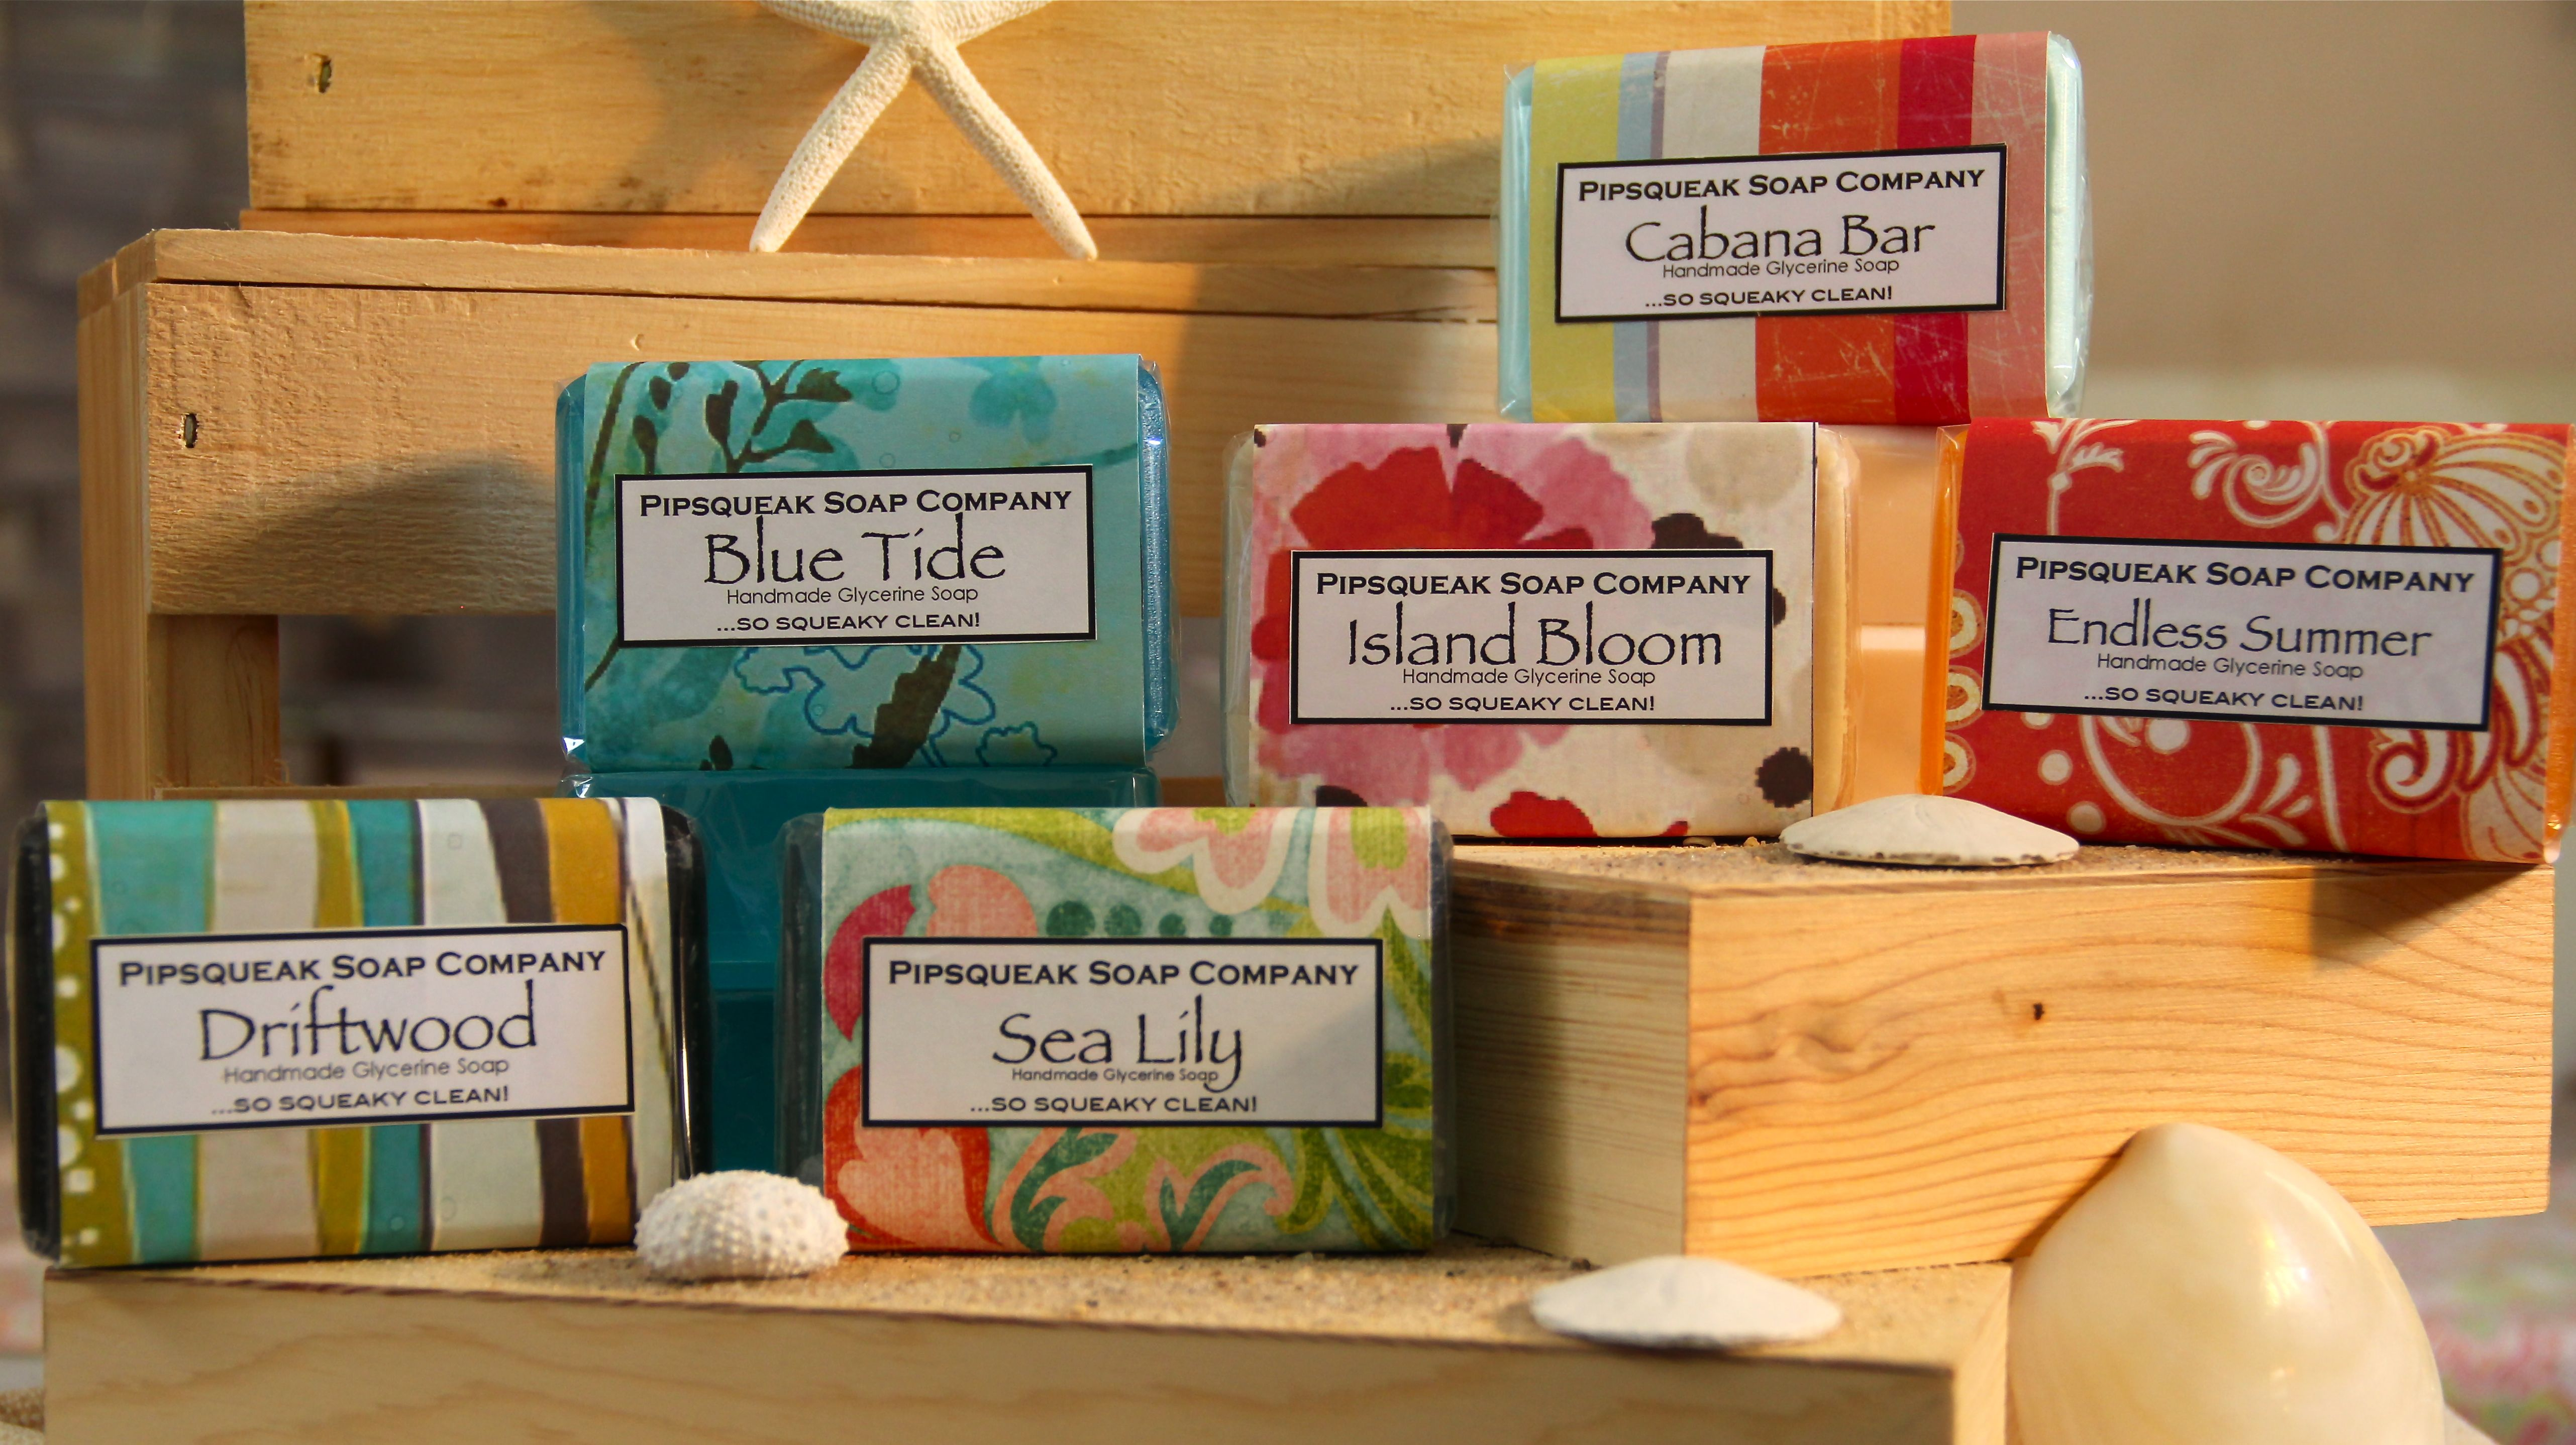 Pipsqueak Soap Company Launches Their New Scent, Cabana Bar